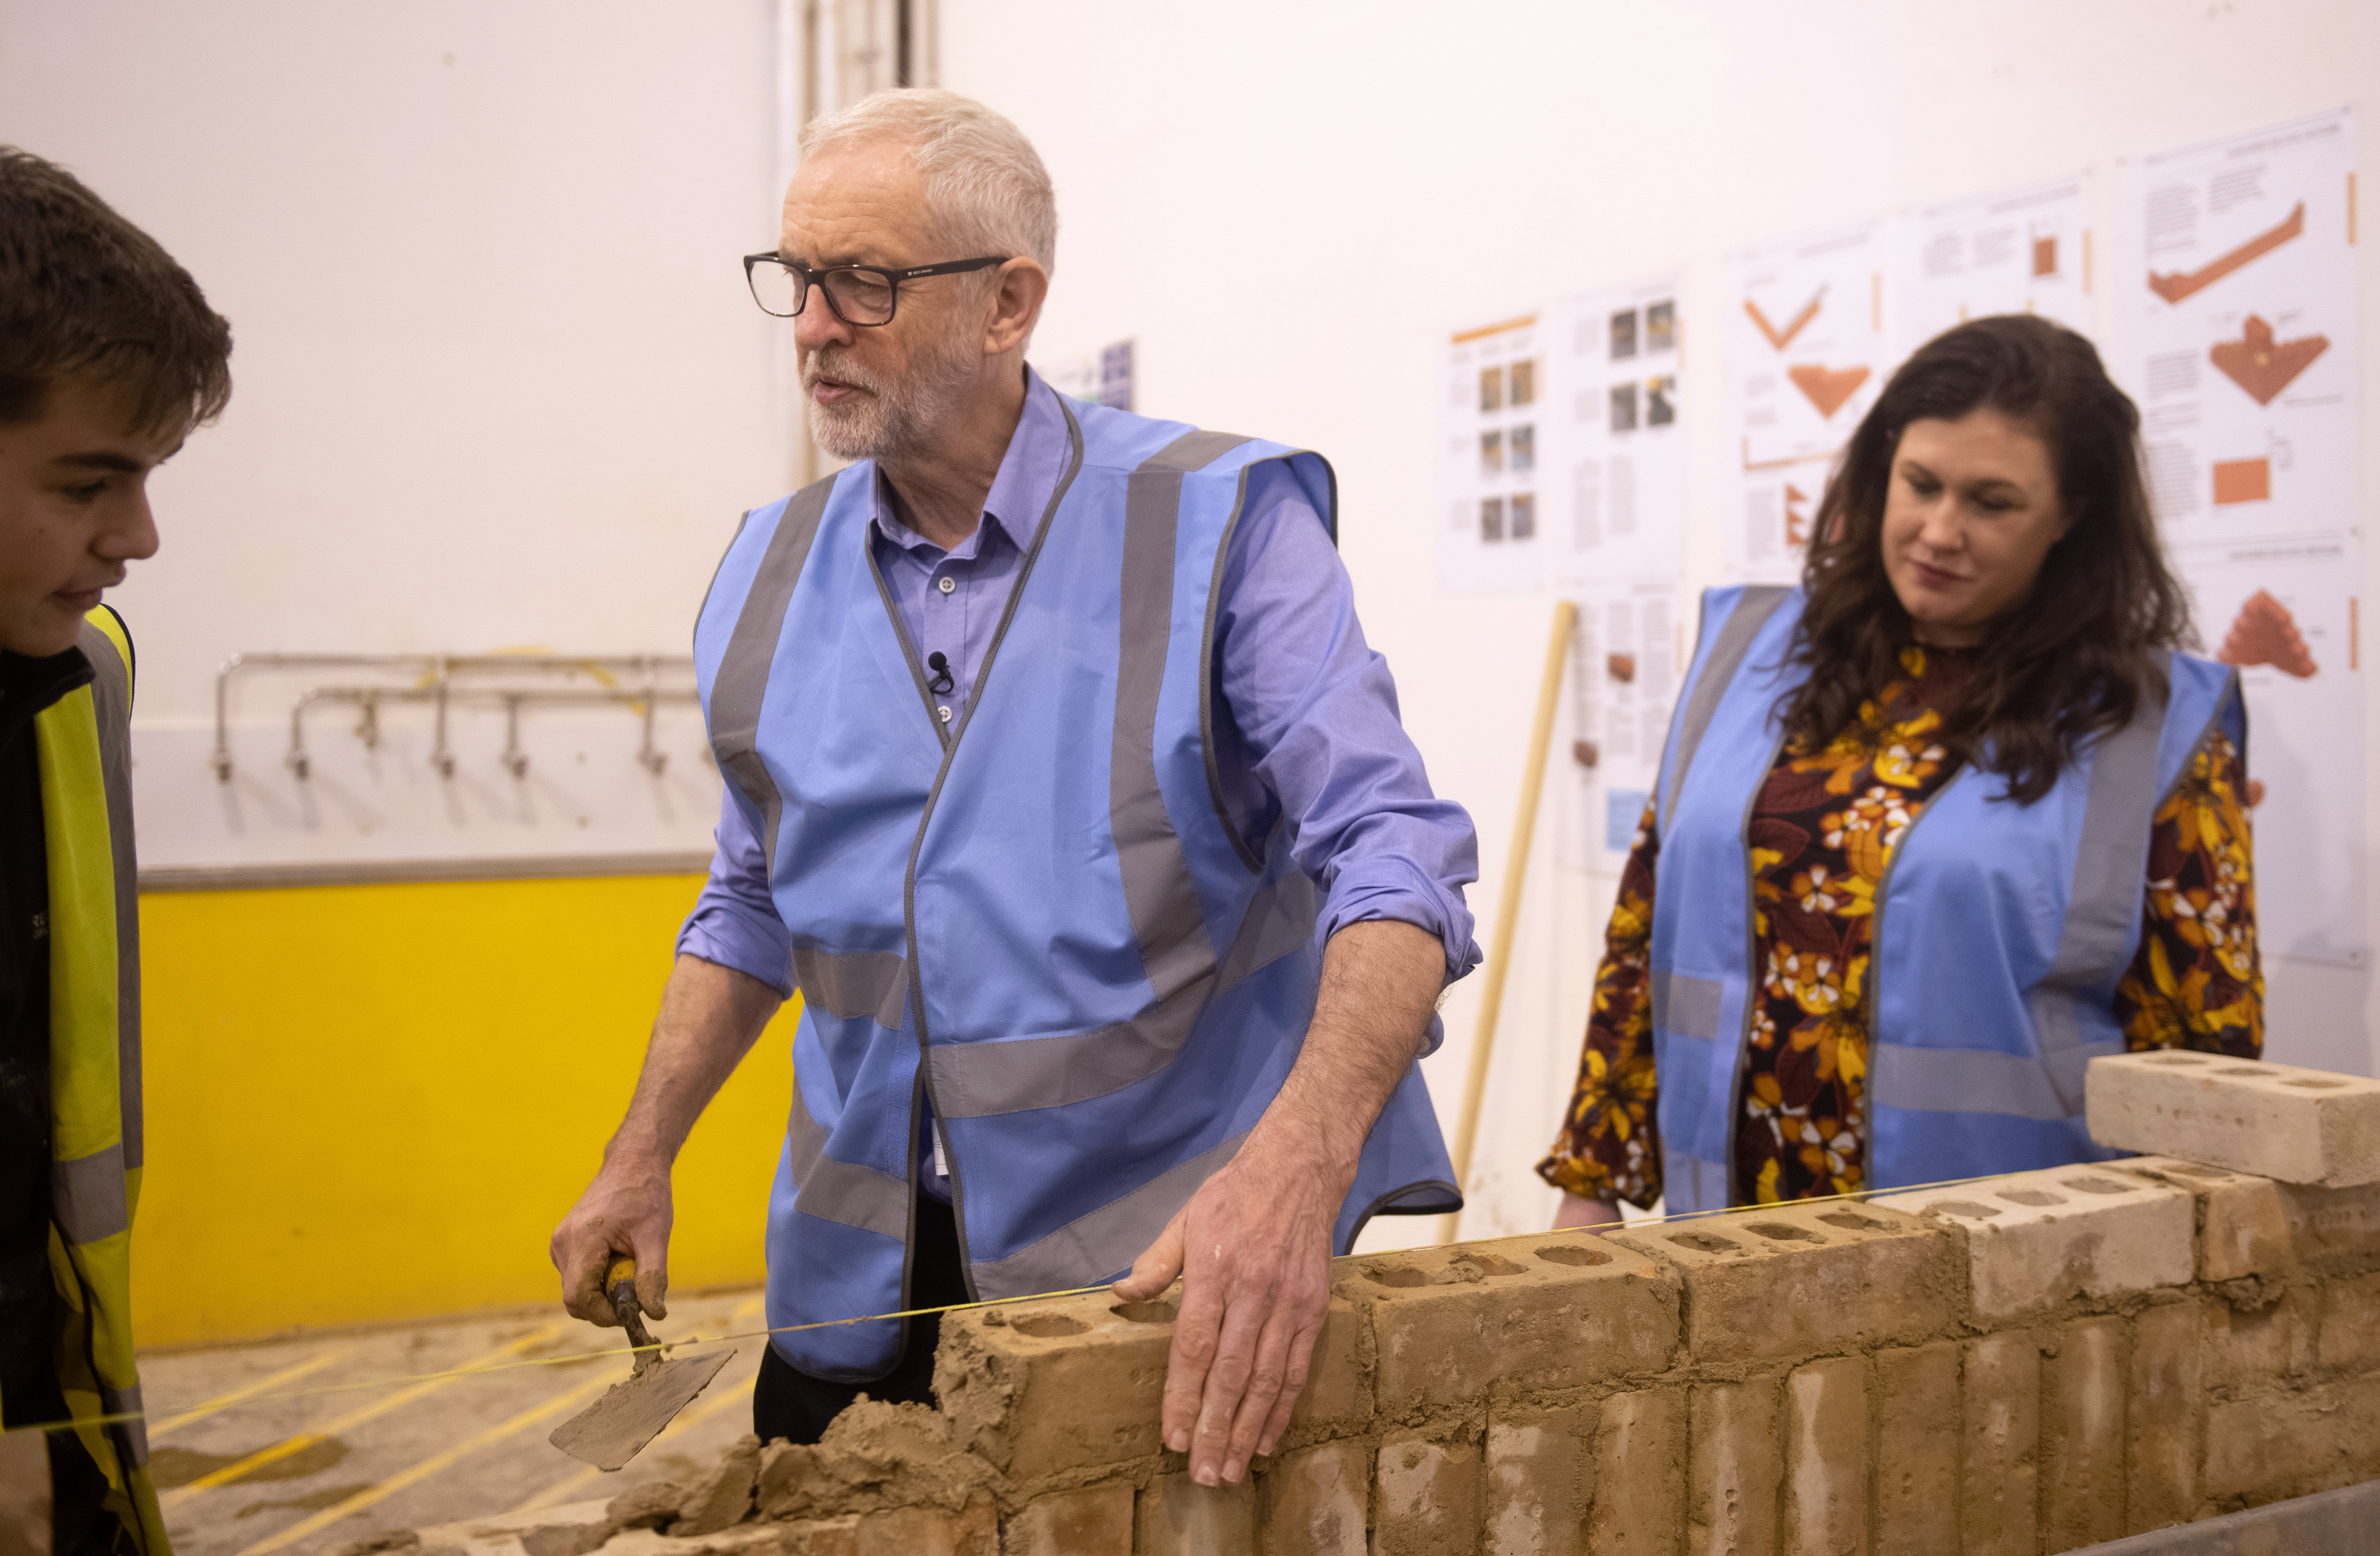 Labour Party leader Jeremy Corbyn tries his hand at bricklaying with apprentice Drew Wainwright (left) and parliamentary candidate for Ashfield Natalie Fleet (right) during a visit to the West Nottinghamshire College Construction Centre, in Ashfield, whilst on the General Election campaign trail.